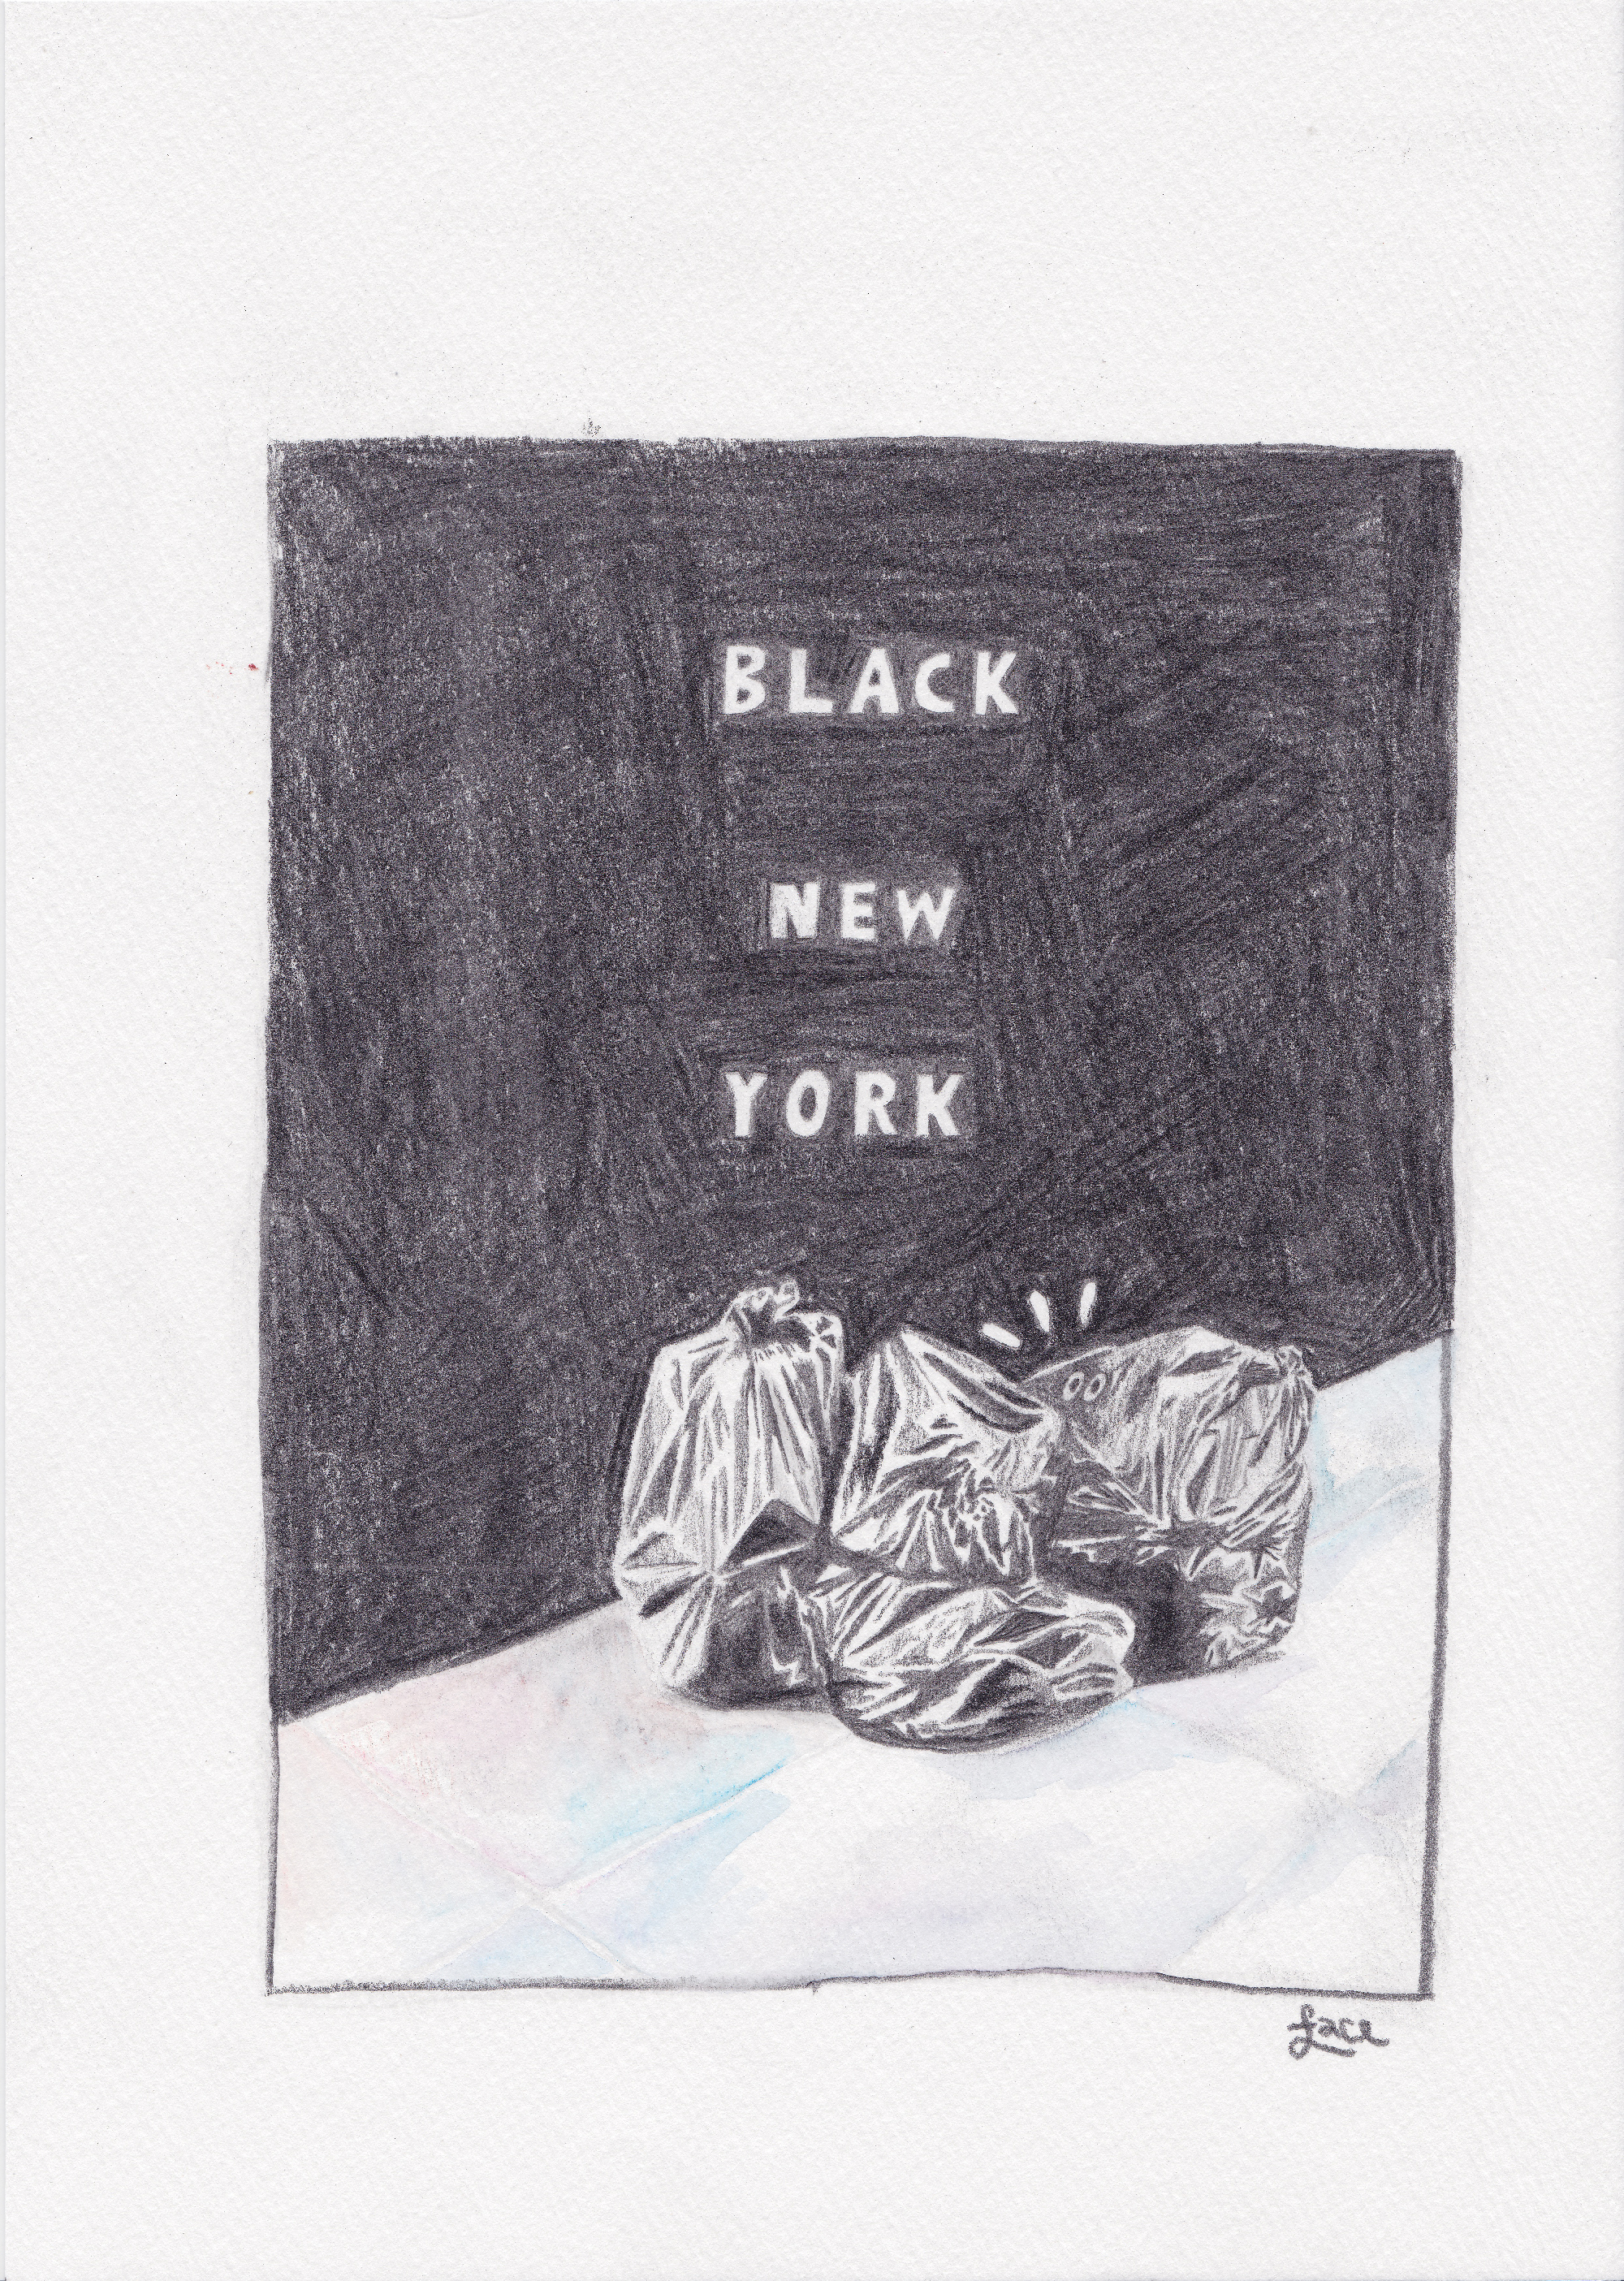 BLACK NEW YORK